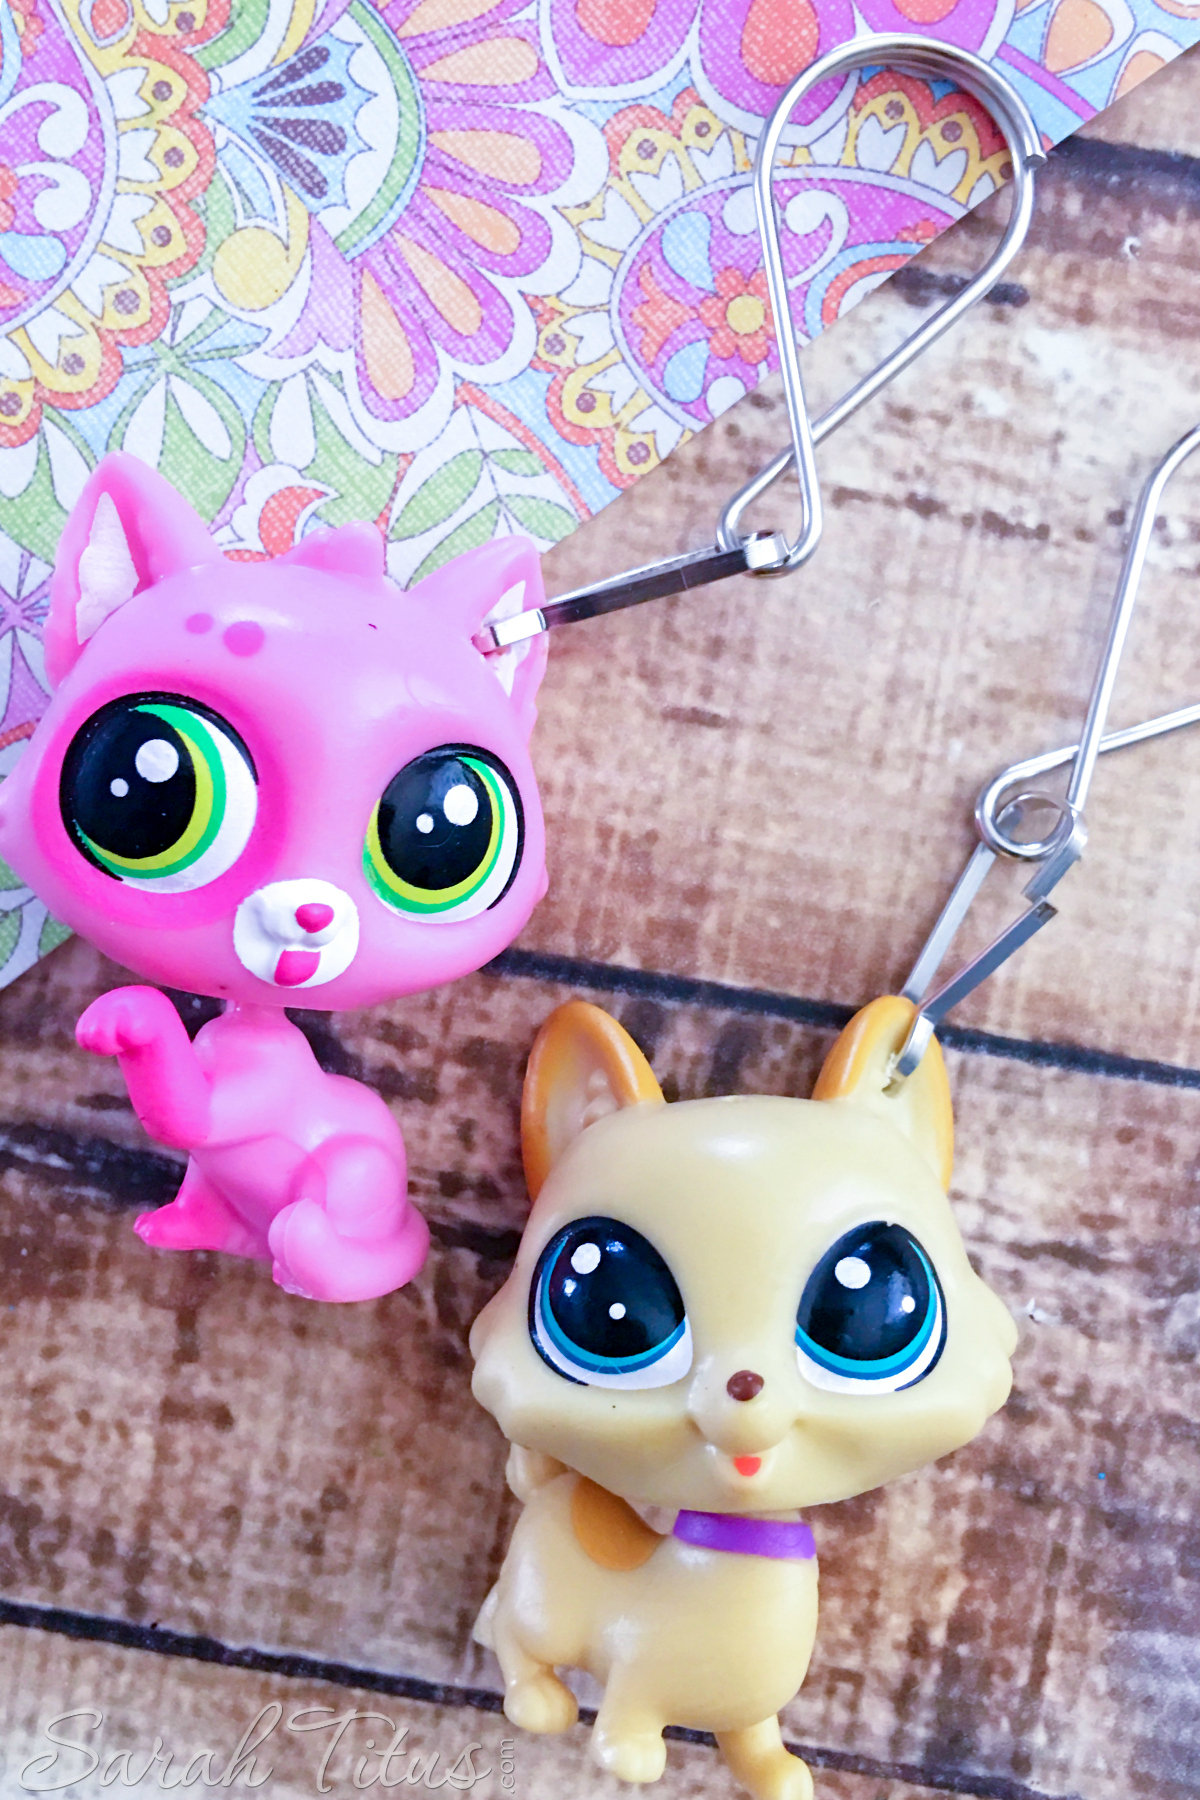 Attaching keychain hook and loop to Littlest Pet Shop's ears